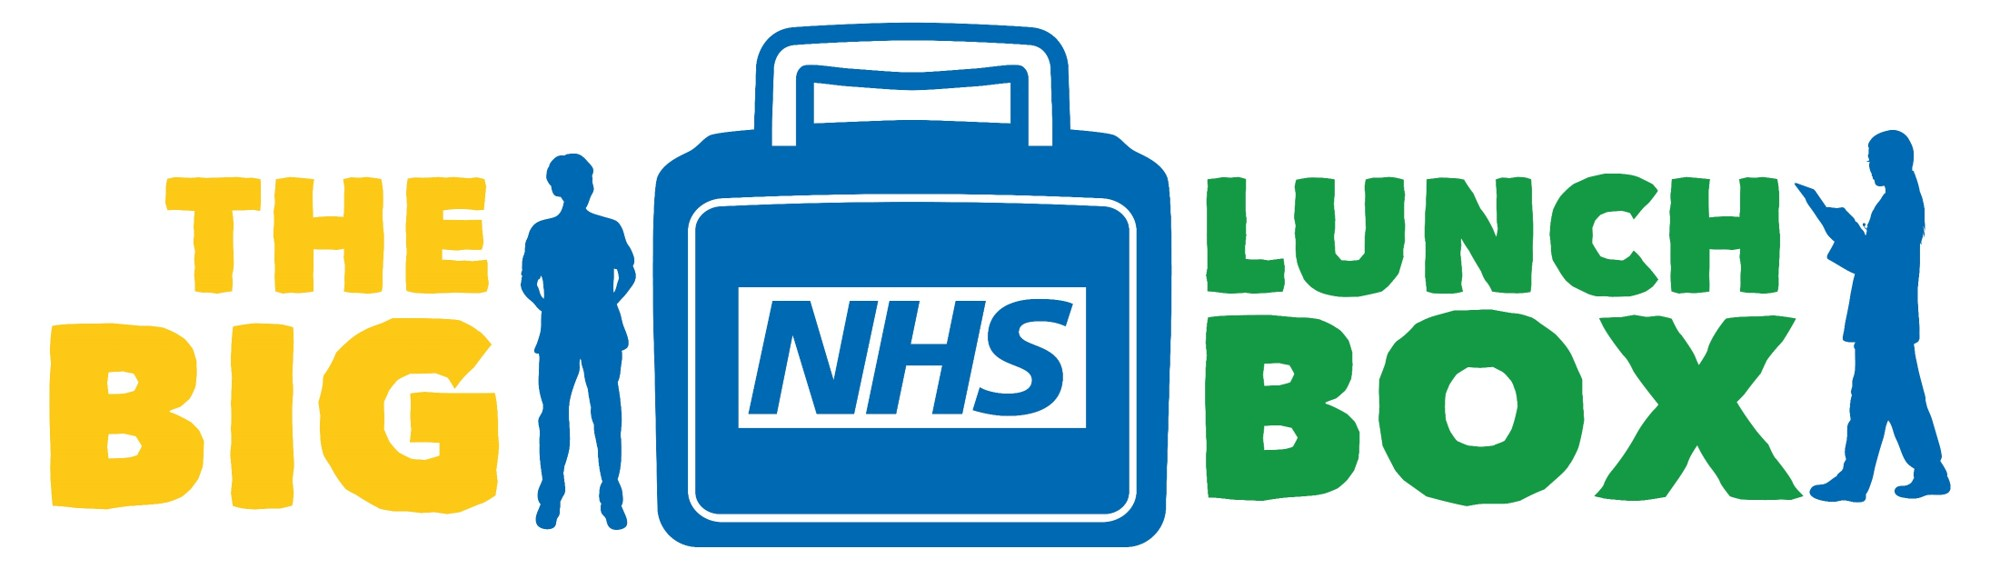 The Big NHS Lunchbox